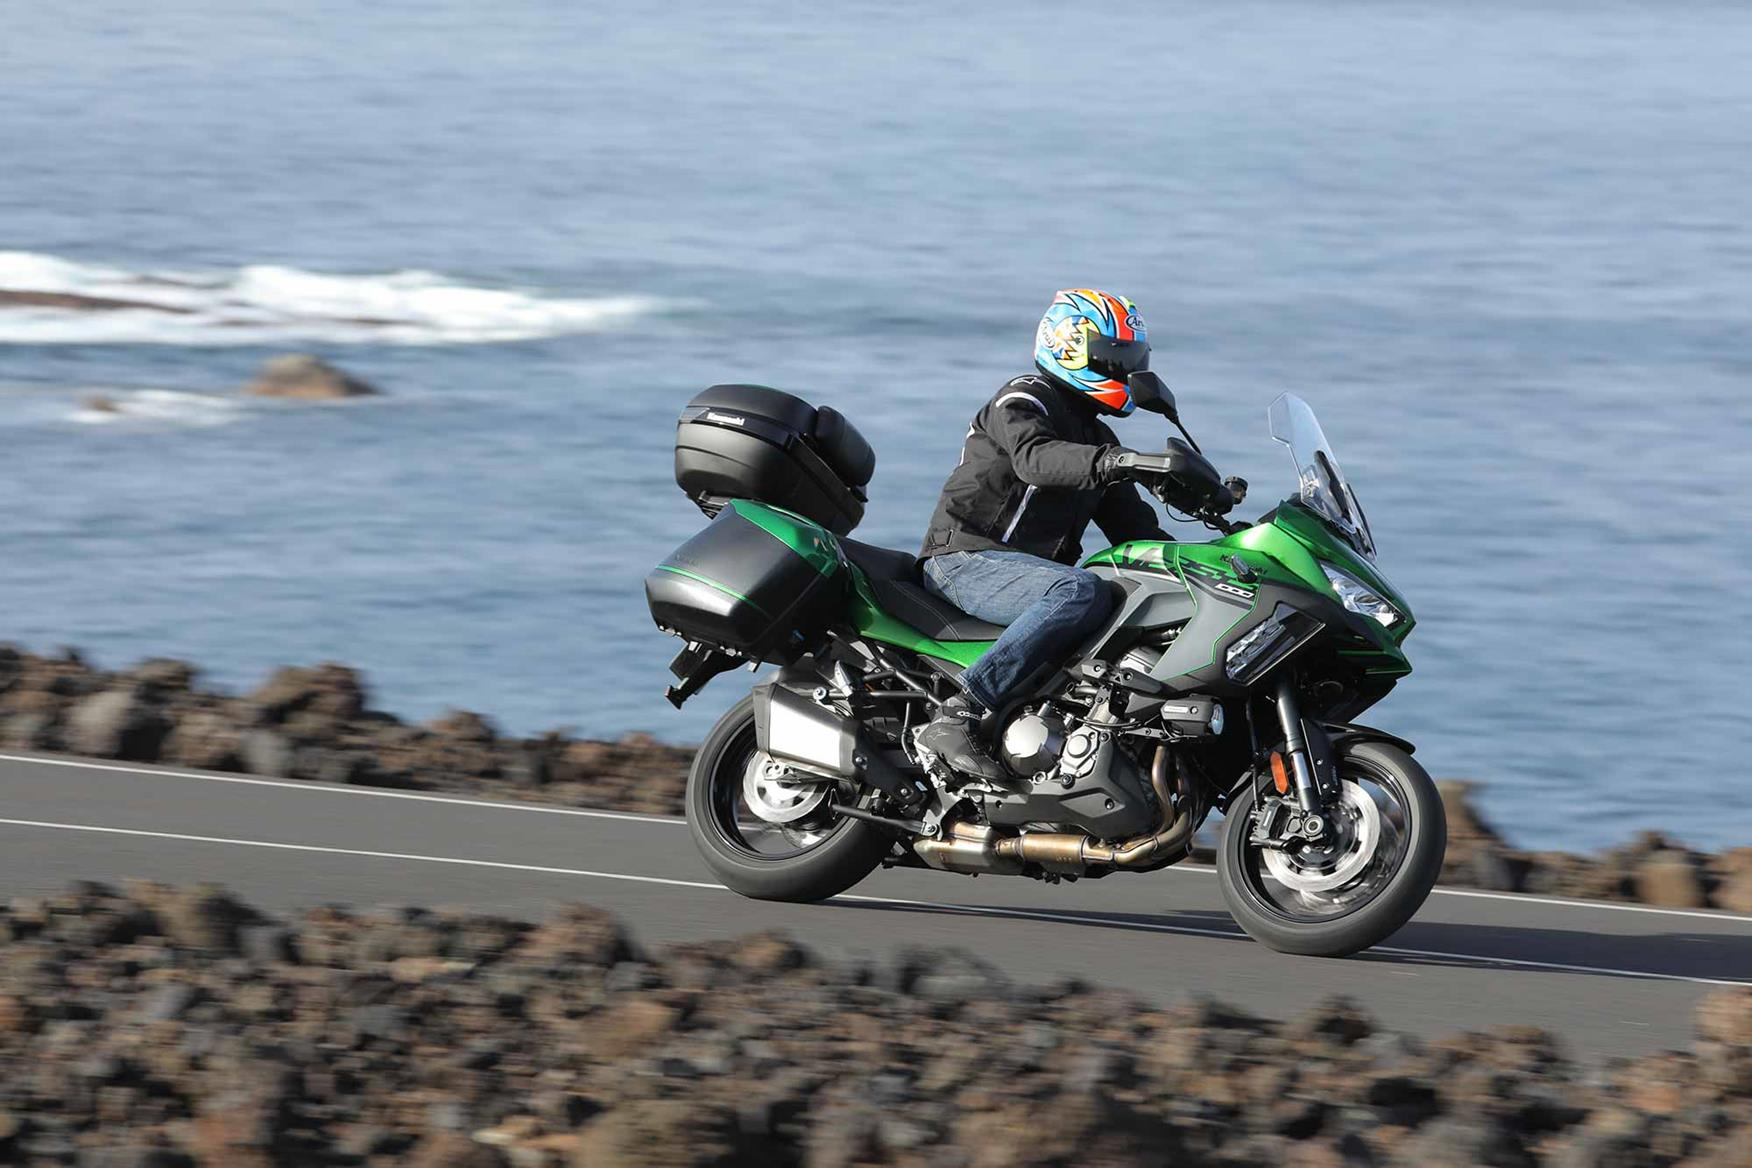 The Versys offers bags of comfort